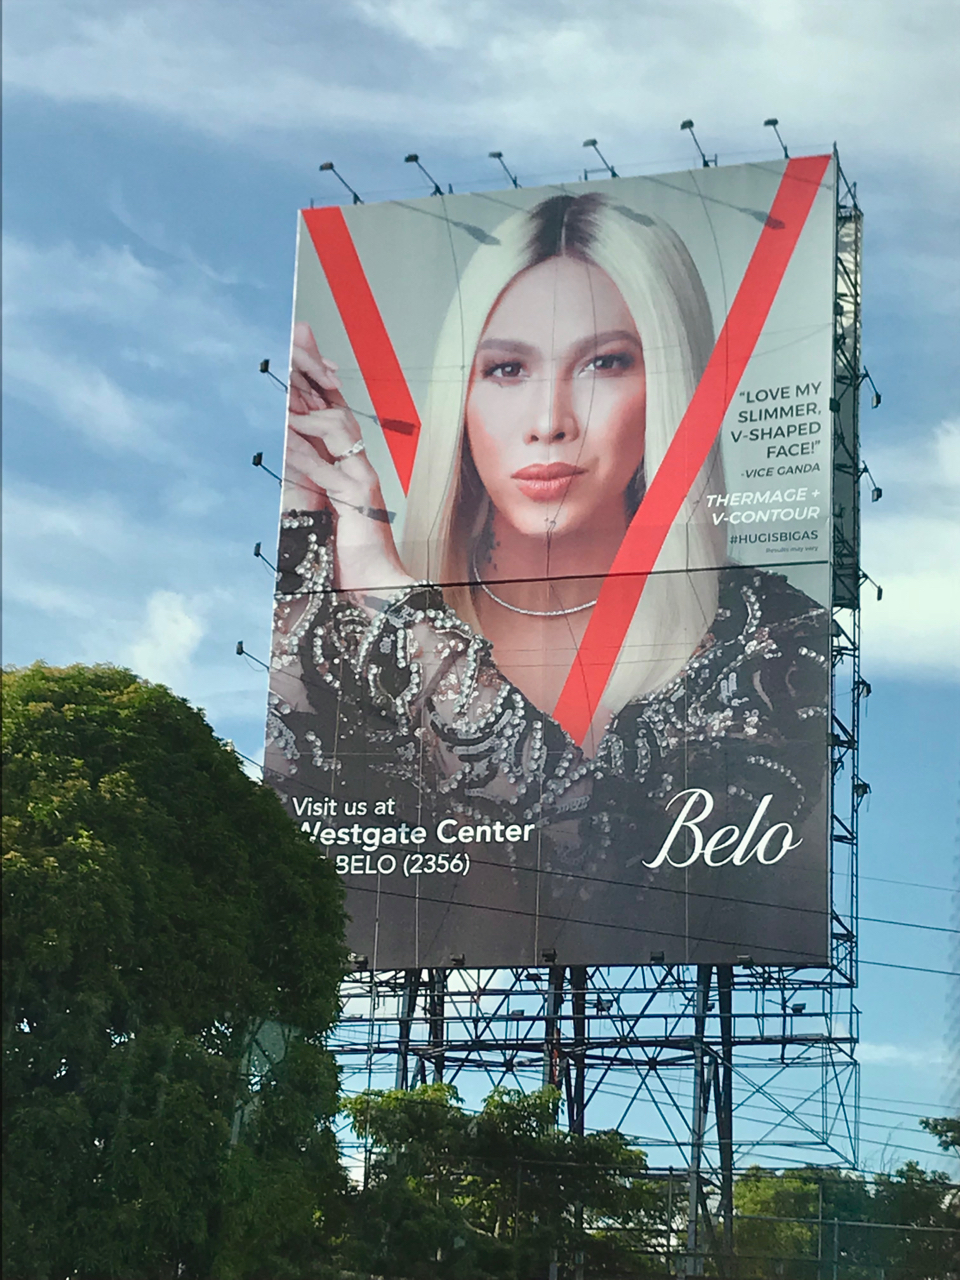 - While driving along the SLEX I noticed Belo's new campaign, Vice Ganda. Sobra ganda at galing for inclusion!